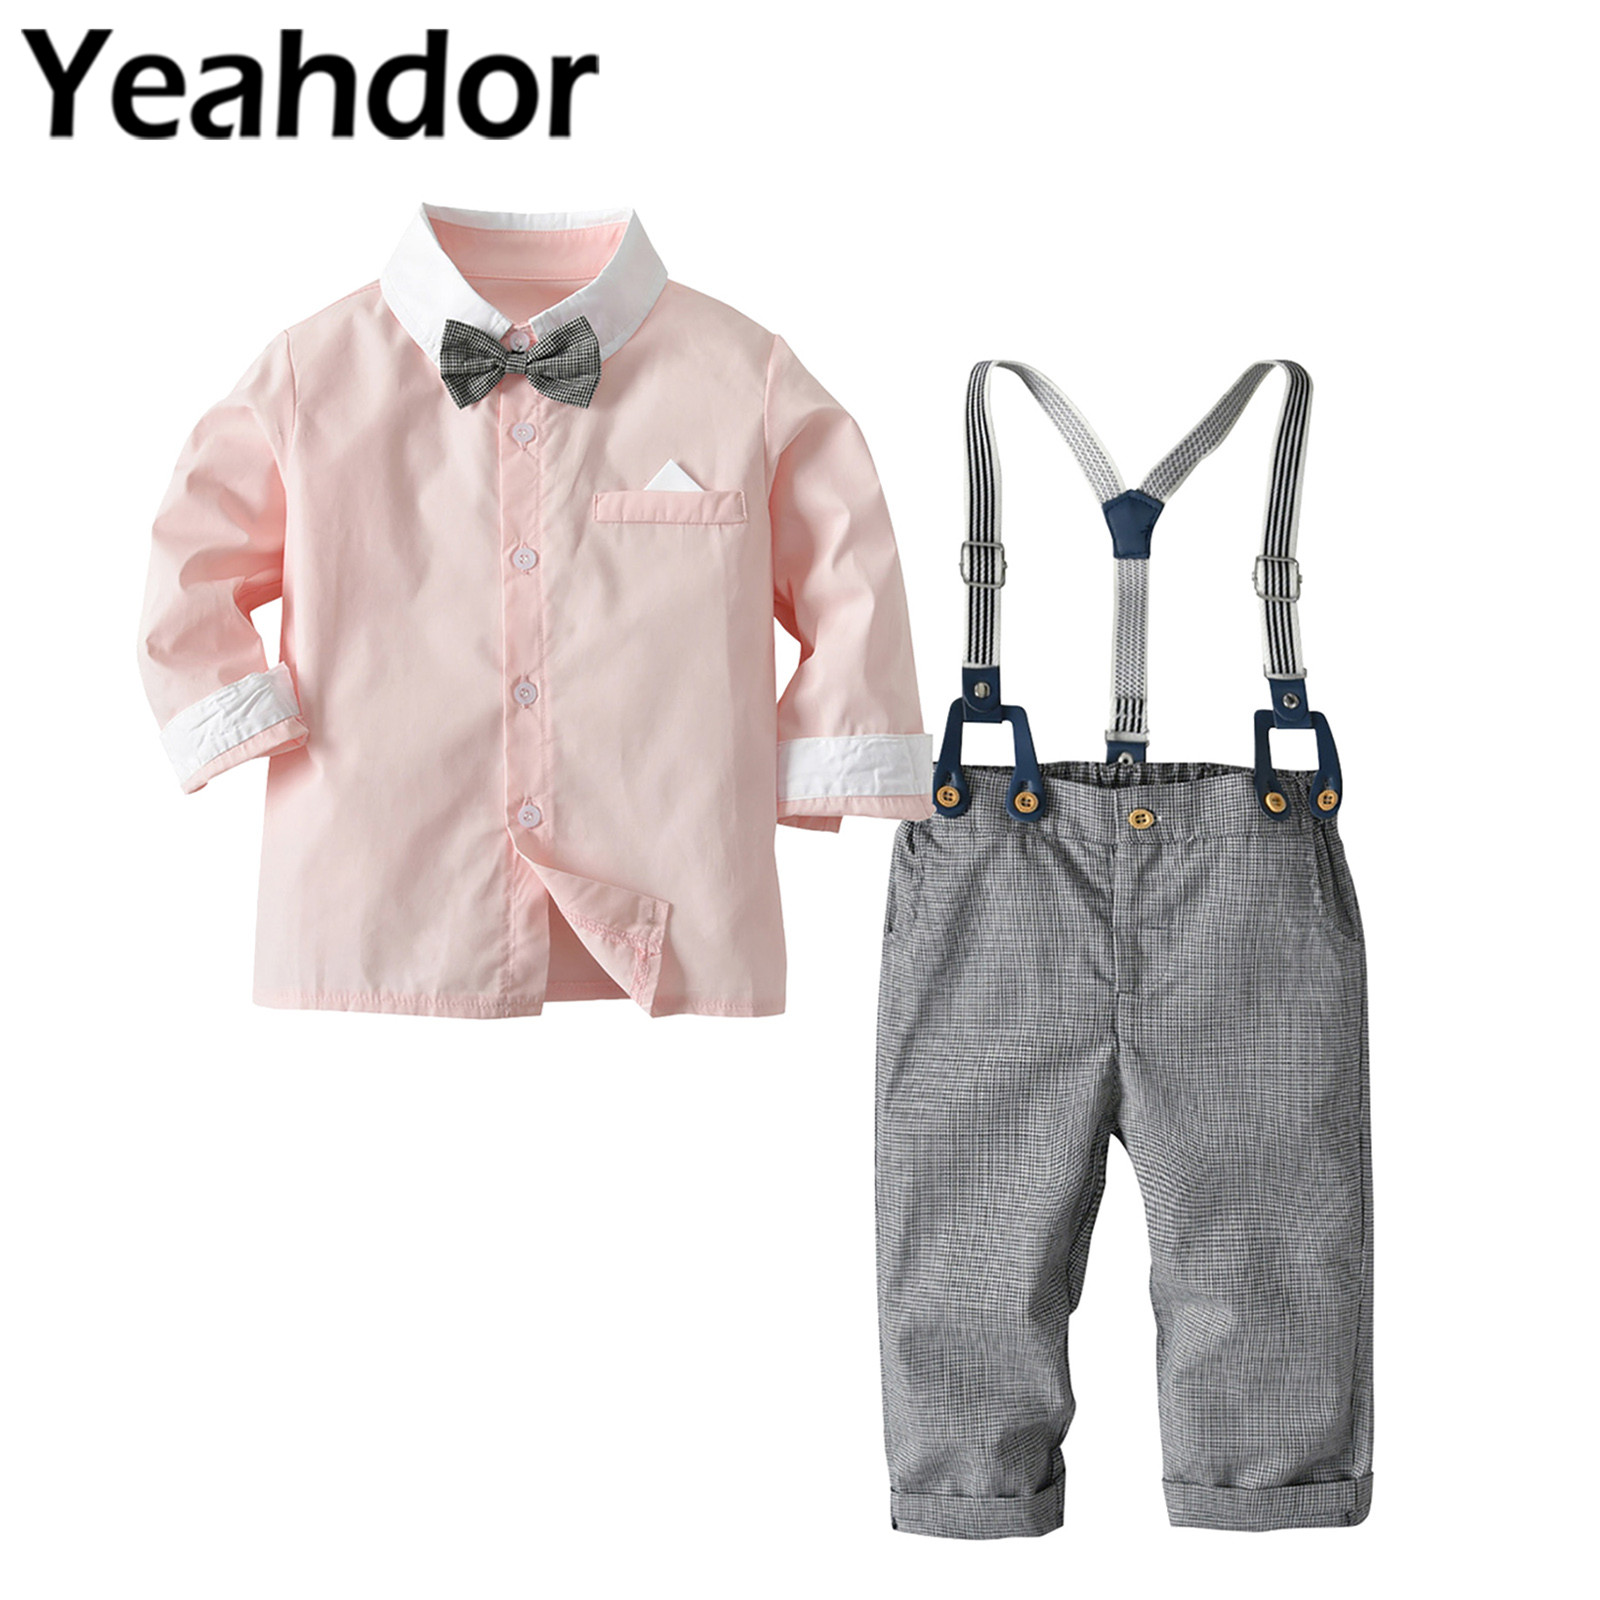 2Pcs Baby Boys Clothes Set Gentleman Outfits Long Sleeve Shirt Pants Children Clothing Sets Boys Wedding Suits Party Costume